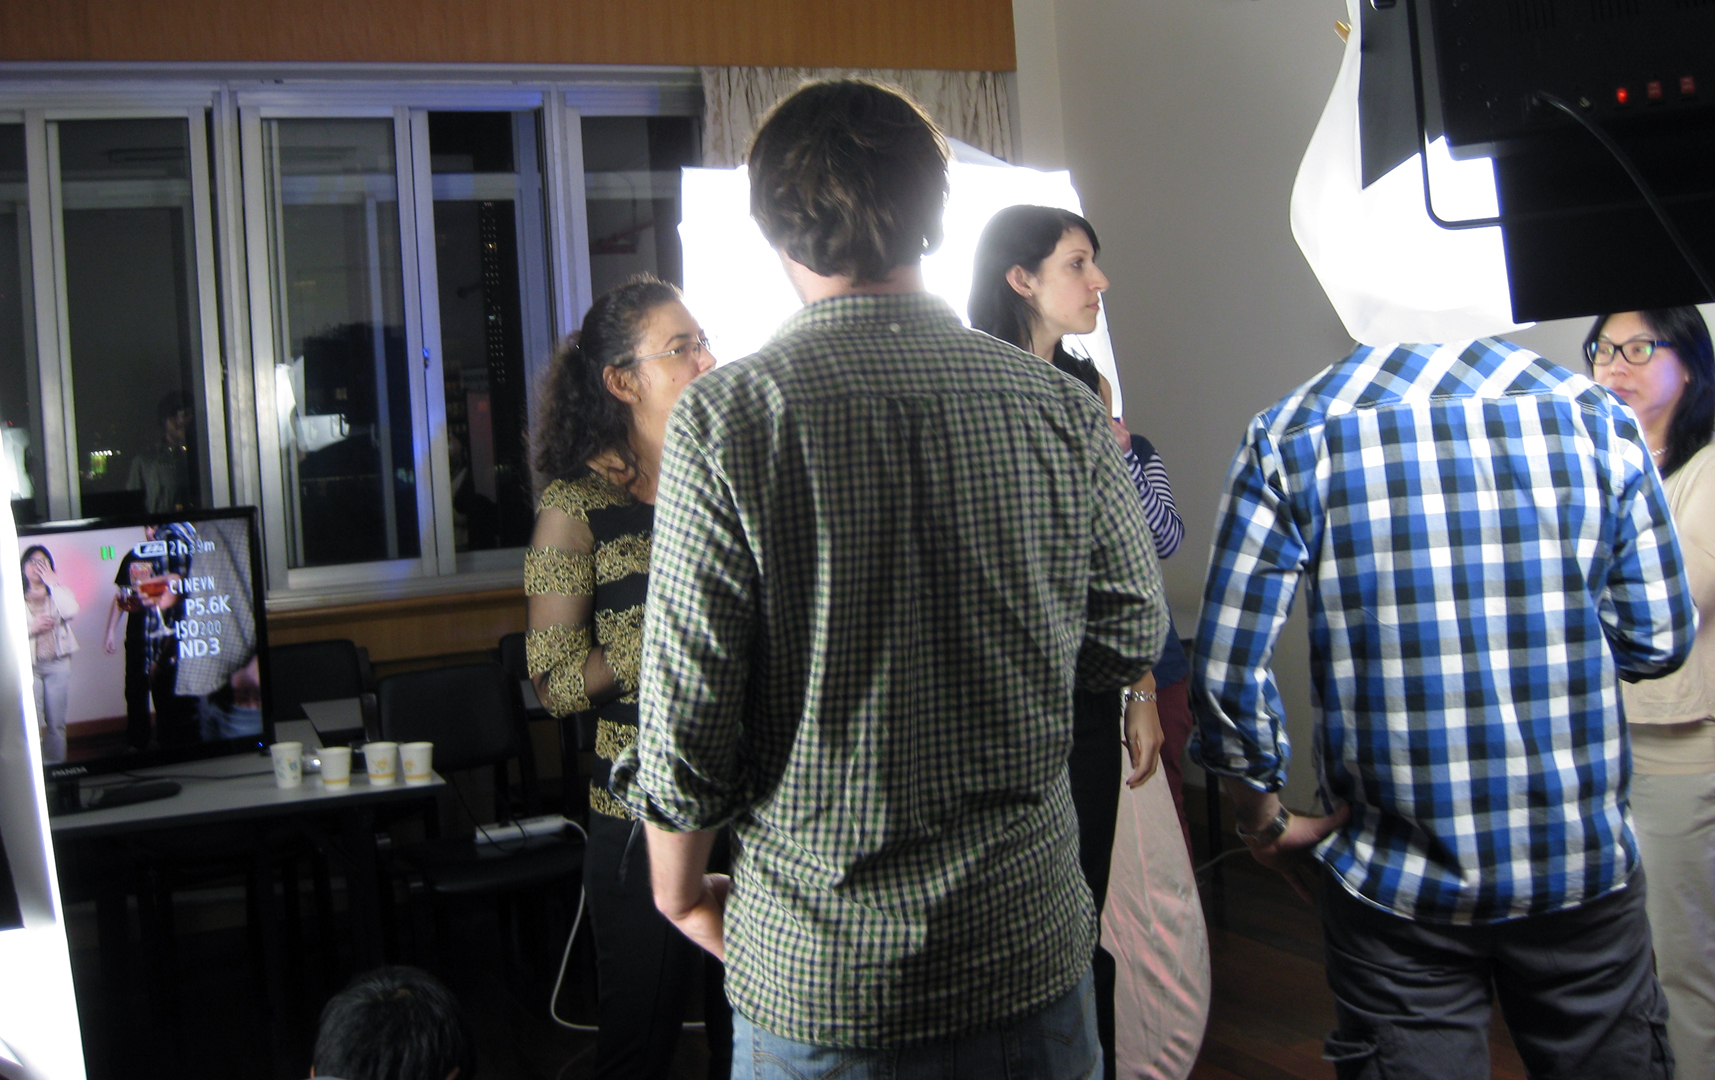 Party scene with crowd of students: 4 of them.(Photo: Sarah)